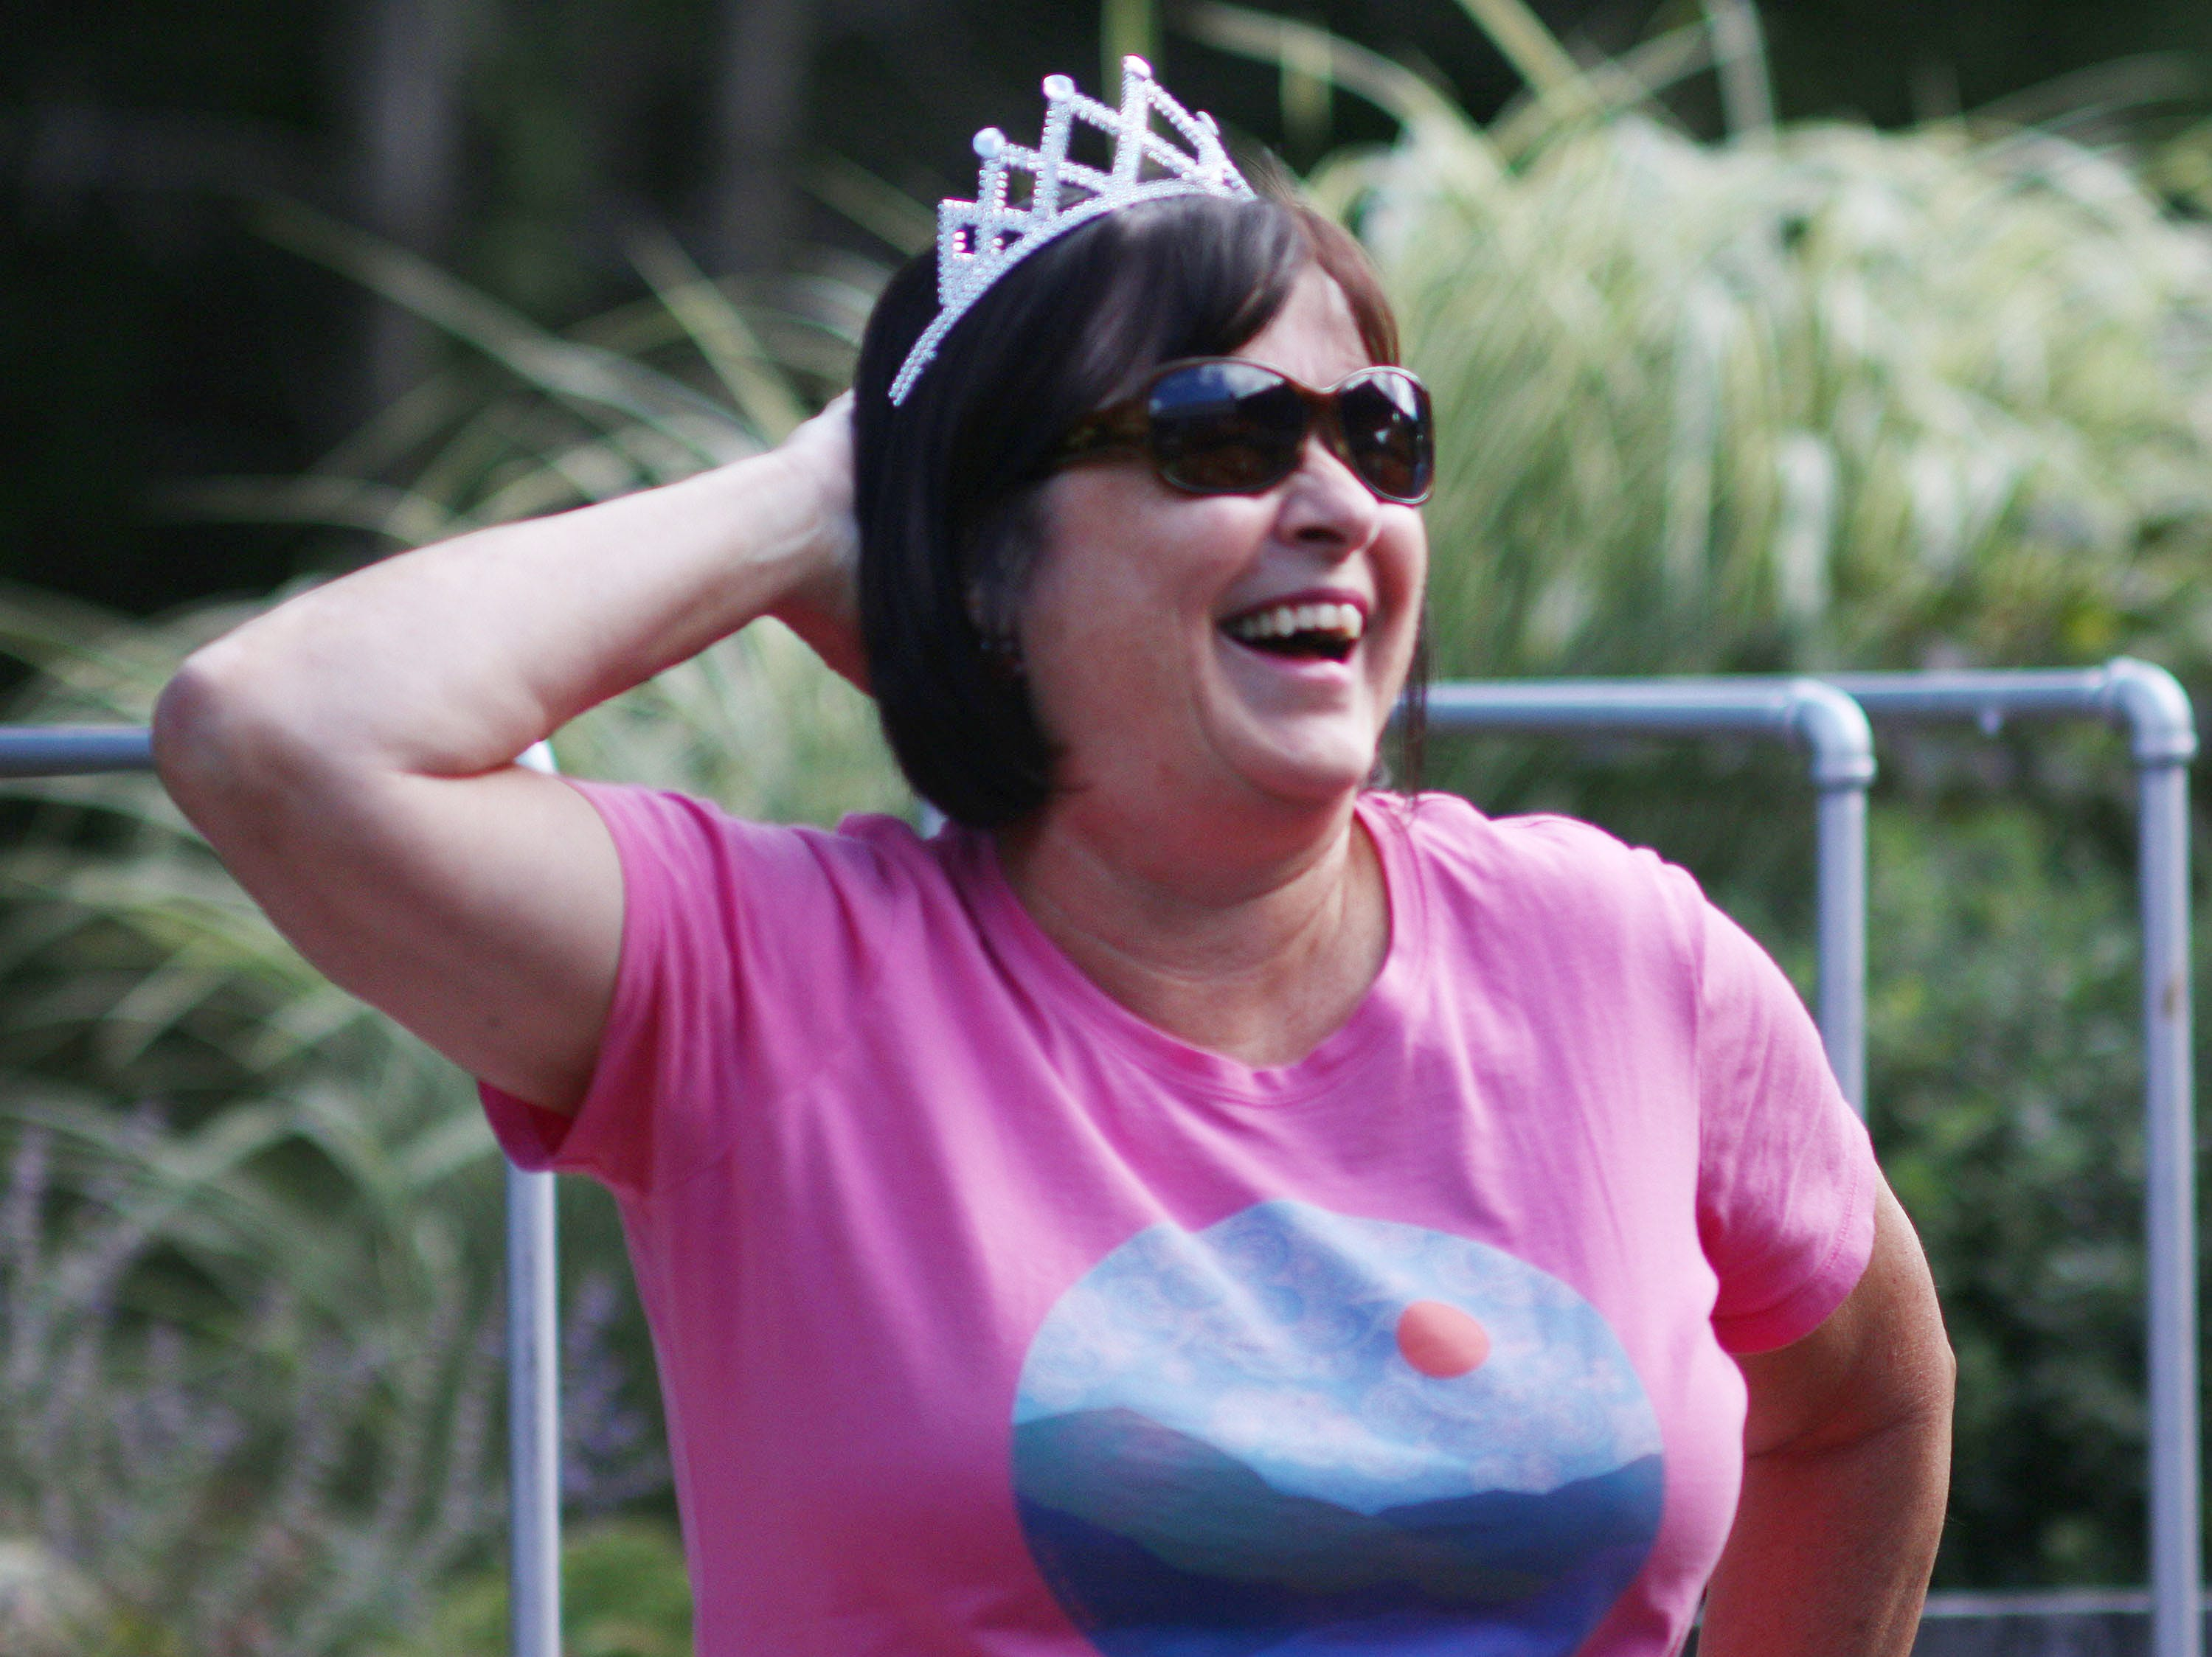 Nancy Neusen of Fond du Lac, Wis. savors  her win in the grape stomp at the Harvest Festival & Grape Stomp at The Blind Horse Restaurant and Winery, Saturday, September 22, 2018, in Kohler, Wis.